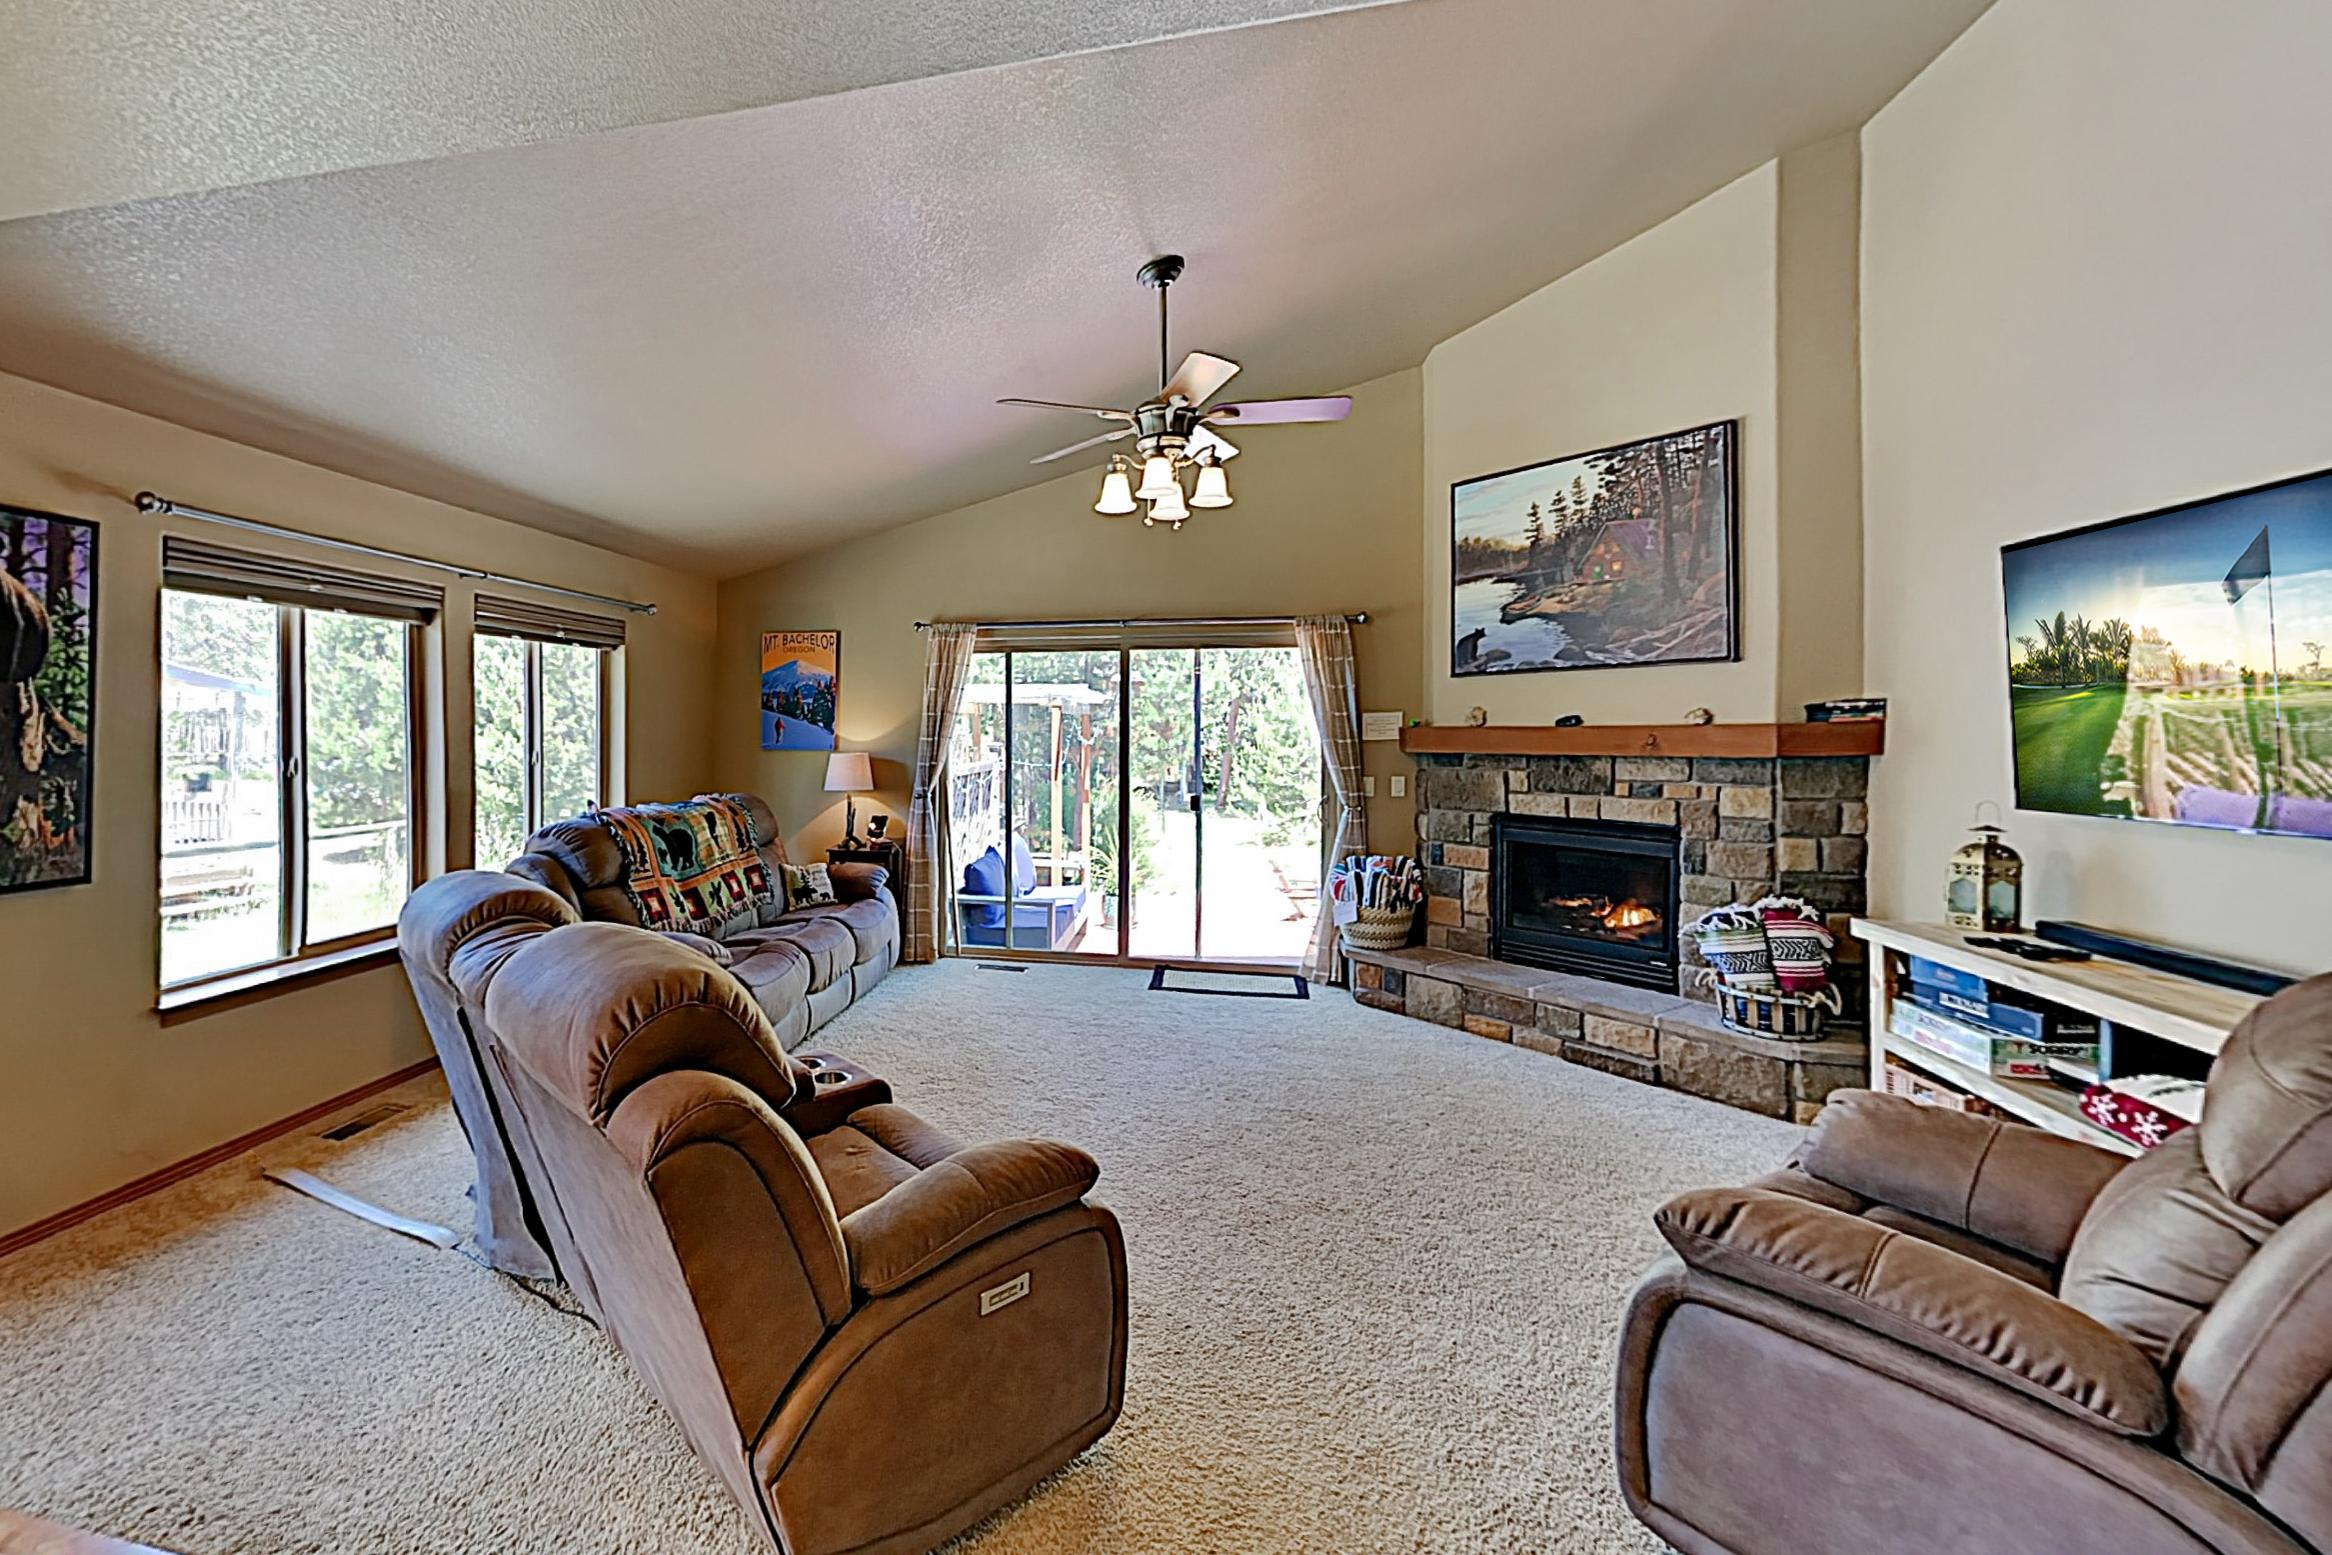 Property Image 1 - Spacious, Rustic Home with Hot Tub & Fire Pit, Near Mt. Bachelor